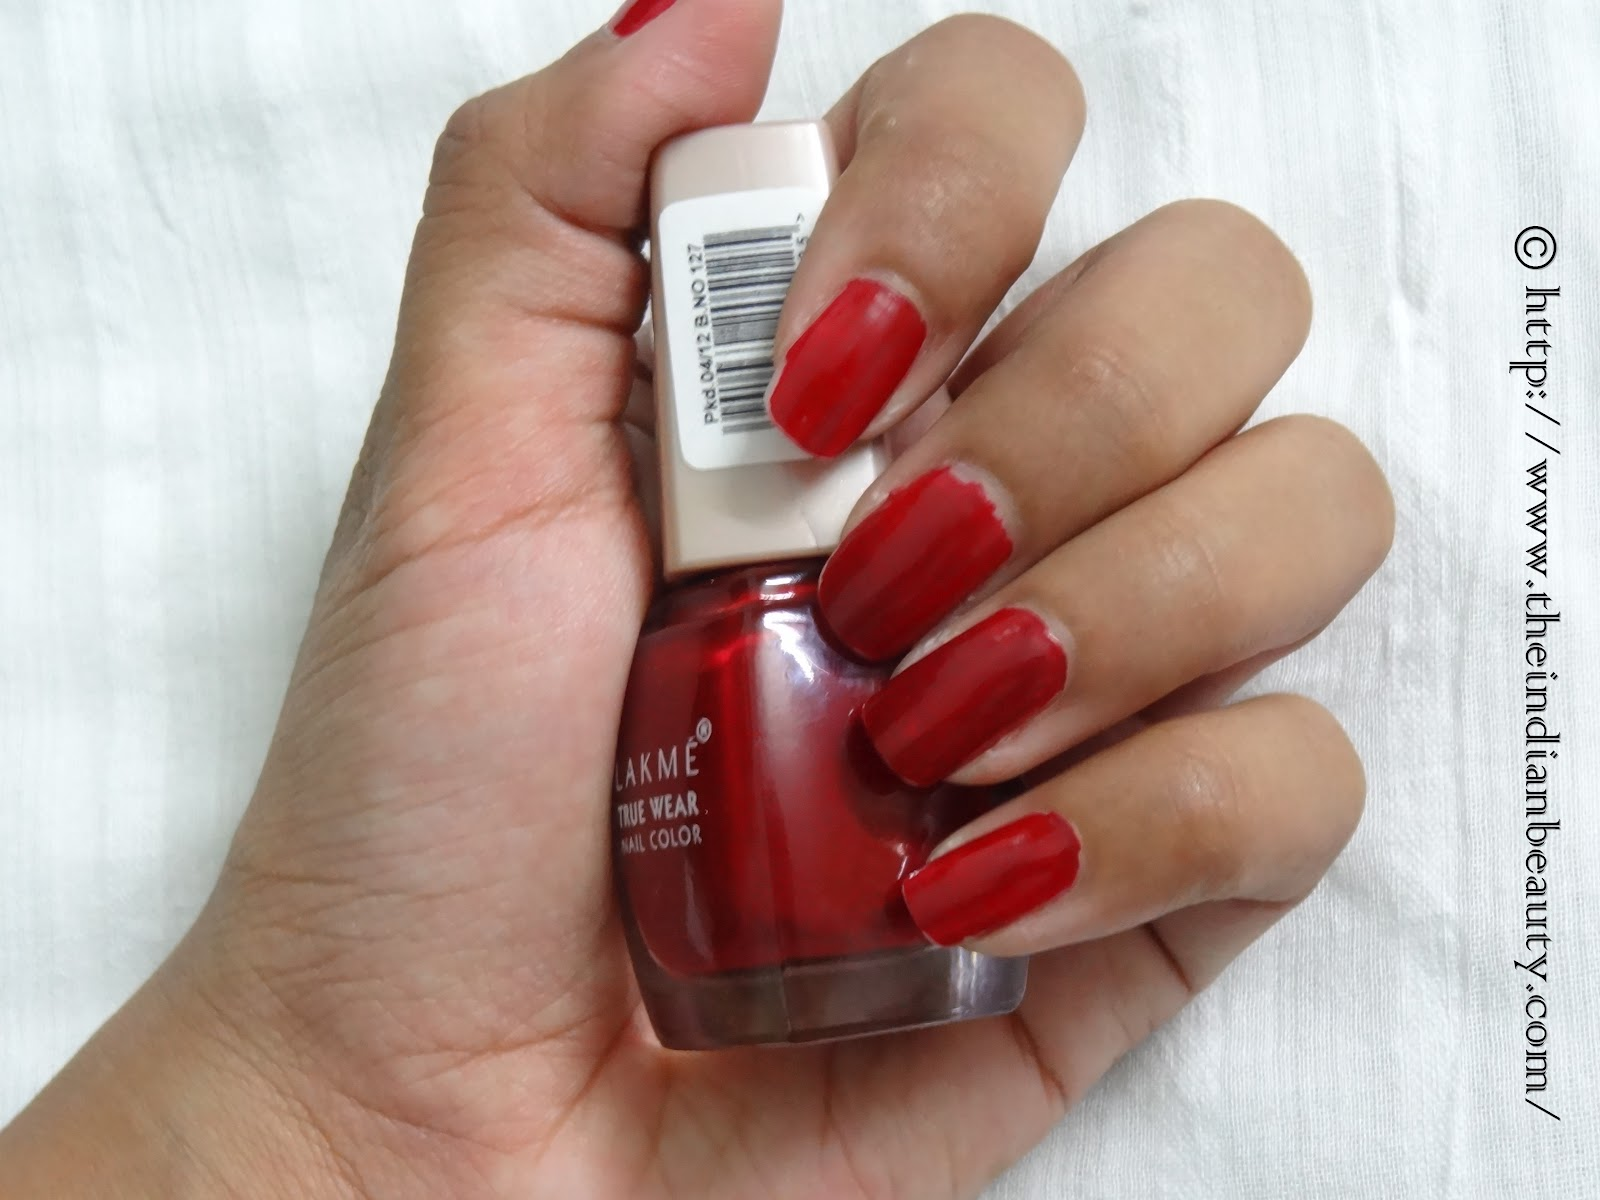 My Experience With Lakme True Wear Nailcolor D415 Manish Malhotra I Love This Nail Paint Though It Does Start Chipping In Like 2 Days